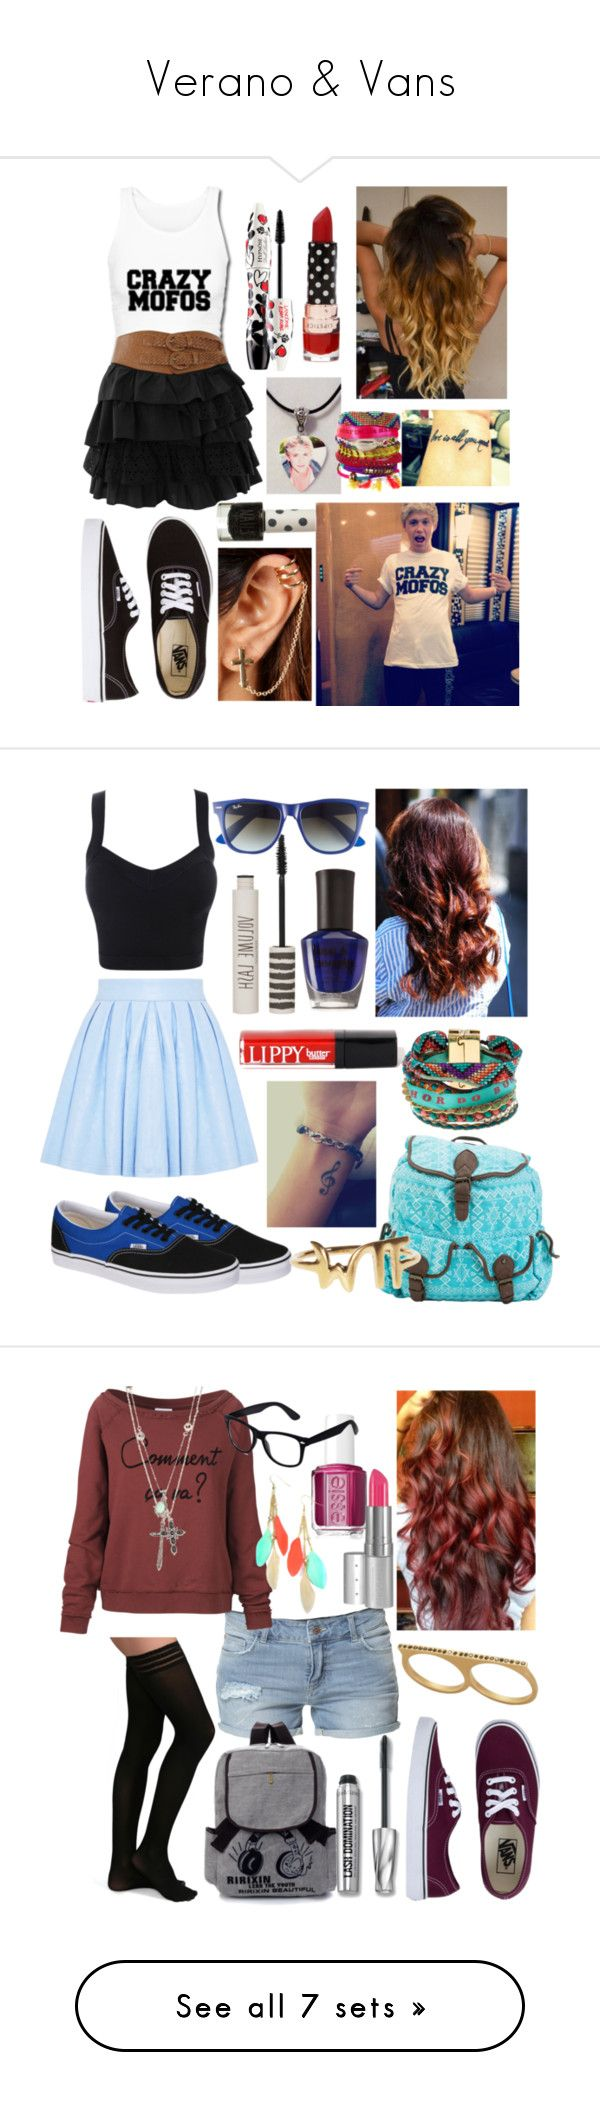 Verano & Vans by ferny-skaters on Polyvore featuring polyvore interior interiors interior design home home decor interior decorating Vans Lancôme Topshop Alice + Olivia Billabong Butter London Forever 21 Ray-Ban Zara Simon Falke Zara 19th Street Bare Escentuals Essie Viva La Diva Lucky Brand Social Anarchy beauty Illustrated People Witchery Spacecraft rag & bone/JEAN Tatty Devine rag & bone Tee and Cake Hollister Co. Betsey Johnson